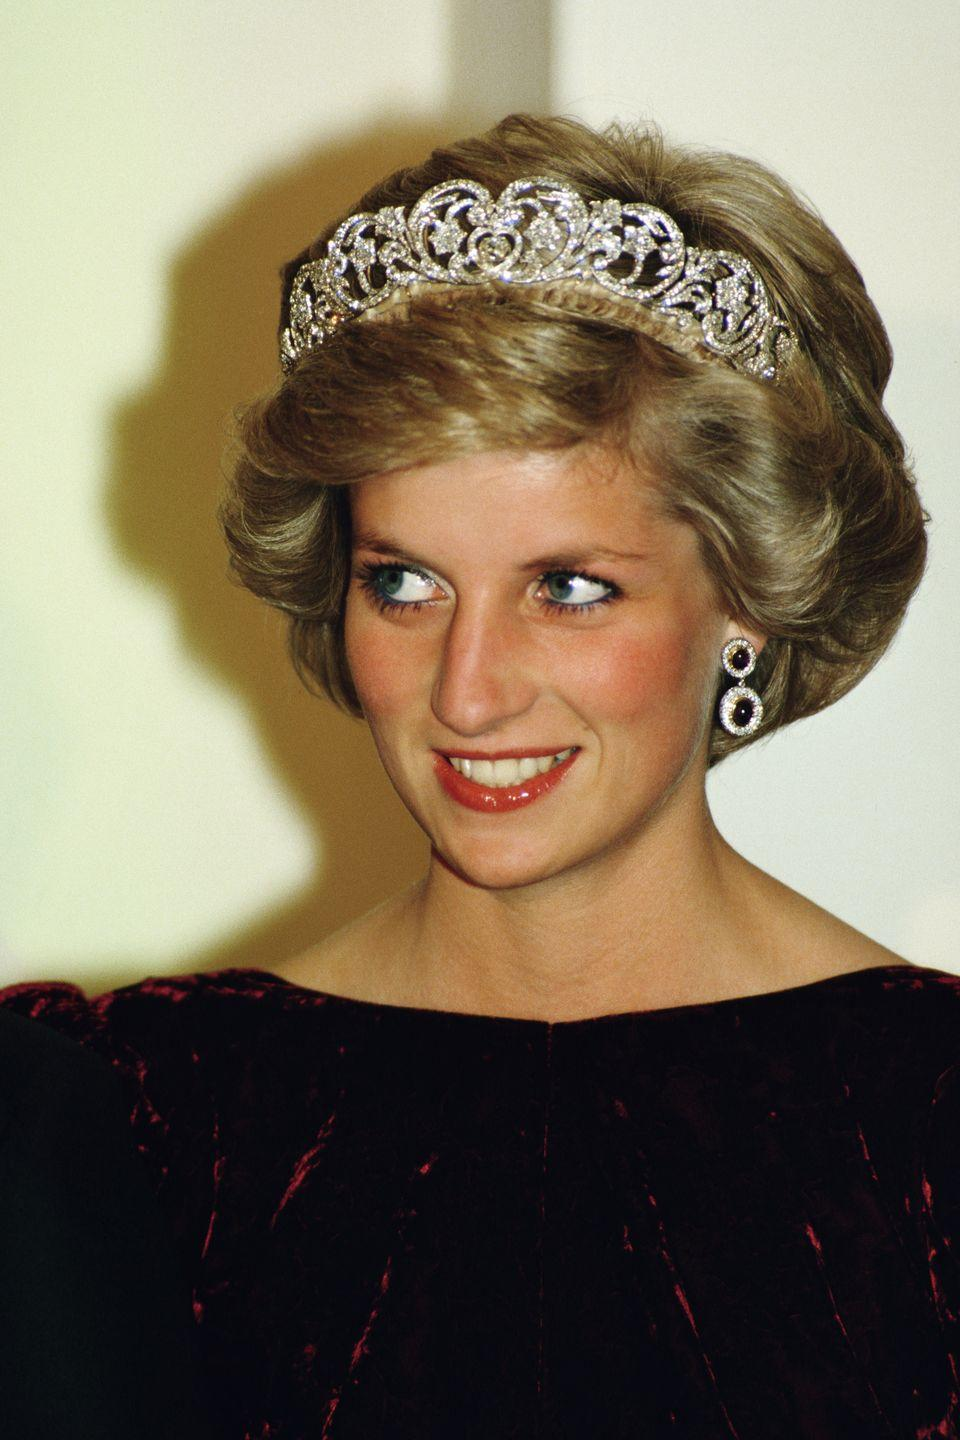 """<p>To get Princess Diana's natural-looking glow, you'll need a big brush. Greenwell <a href=""""http://www.dailymail.co.uk/femail/article-4243454/Diana-s-make-artist-Mary-Greenwell-recreates-look.html"""" rel=""""nofollow noopener"""" target=""""_blank"""" data-ylk=""""slk:advises"""" class=""""link rapid-noclick-resp"""">advises</a> first sweeping a <a href=""""https://www.goodhousekeeping.com/beauty-products/reviews/g5015/best-drugstore-highlighter/"""" rel=""""nofollow noopener"""" target=""""_blank"""" data-ylk=""""slk:highlighter"""" class=""""link rapid-noclick-resp"""">highlighter</a> on the cheekbones with a contour color underneath. Then apply blush on the apples of the cheeks and the <a href=""""https://www.goodhousekeeping.com/beauty/makeup/a33010/how-to-apply-bronzer-mistakes/"""" rel=""""nofollow noopener"""" target=""""_blank"""" data-ylk=""""slk:bronzer"""" class=""""link rapid-noclick-resp"""">bronzer</a> along the outside of your near your ears and hairline.</p>"""